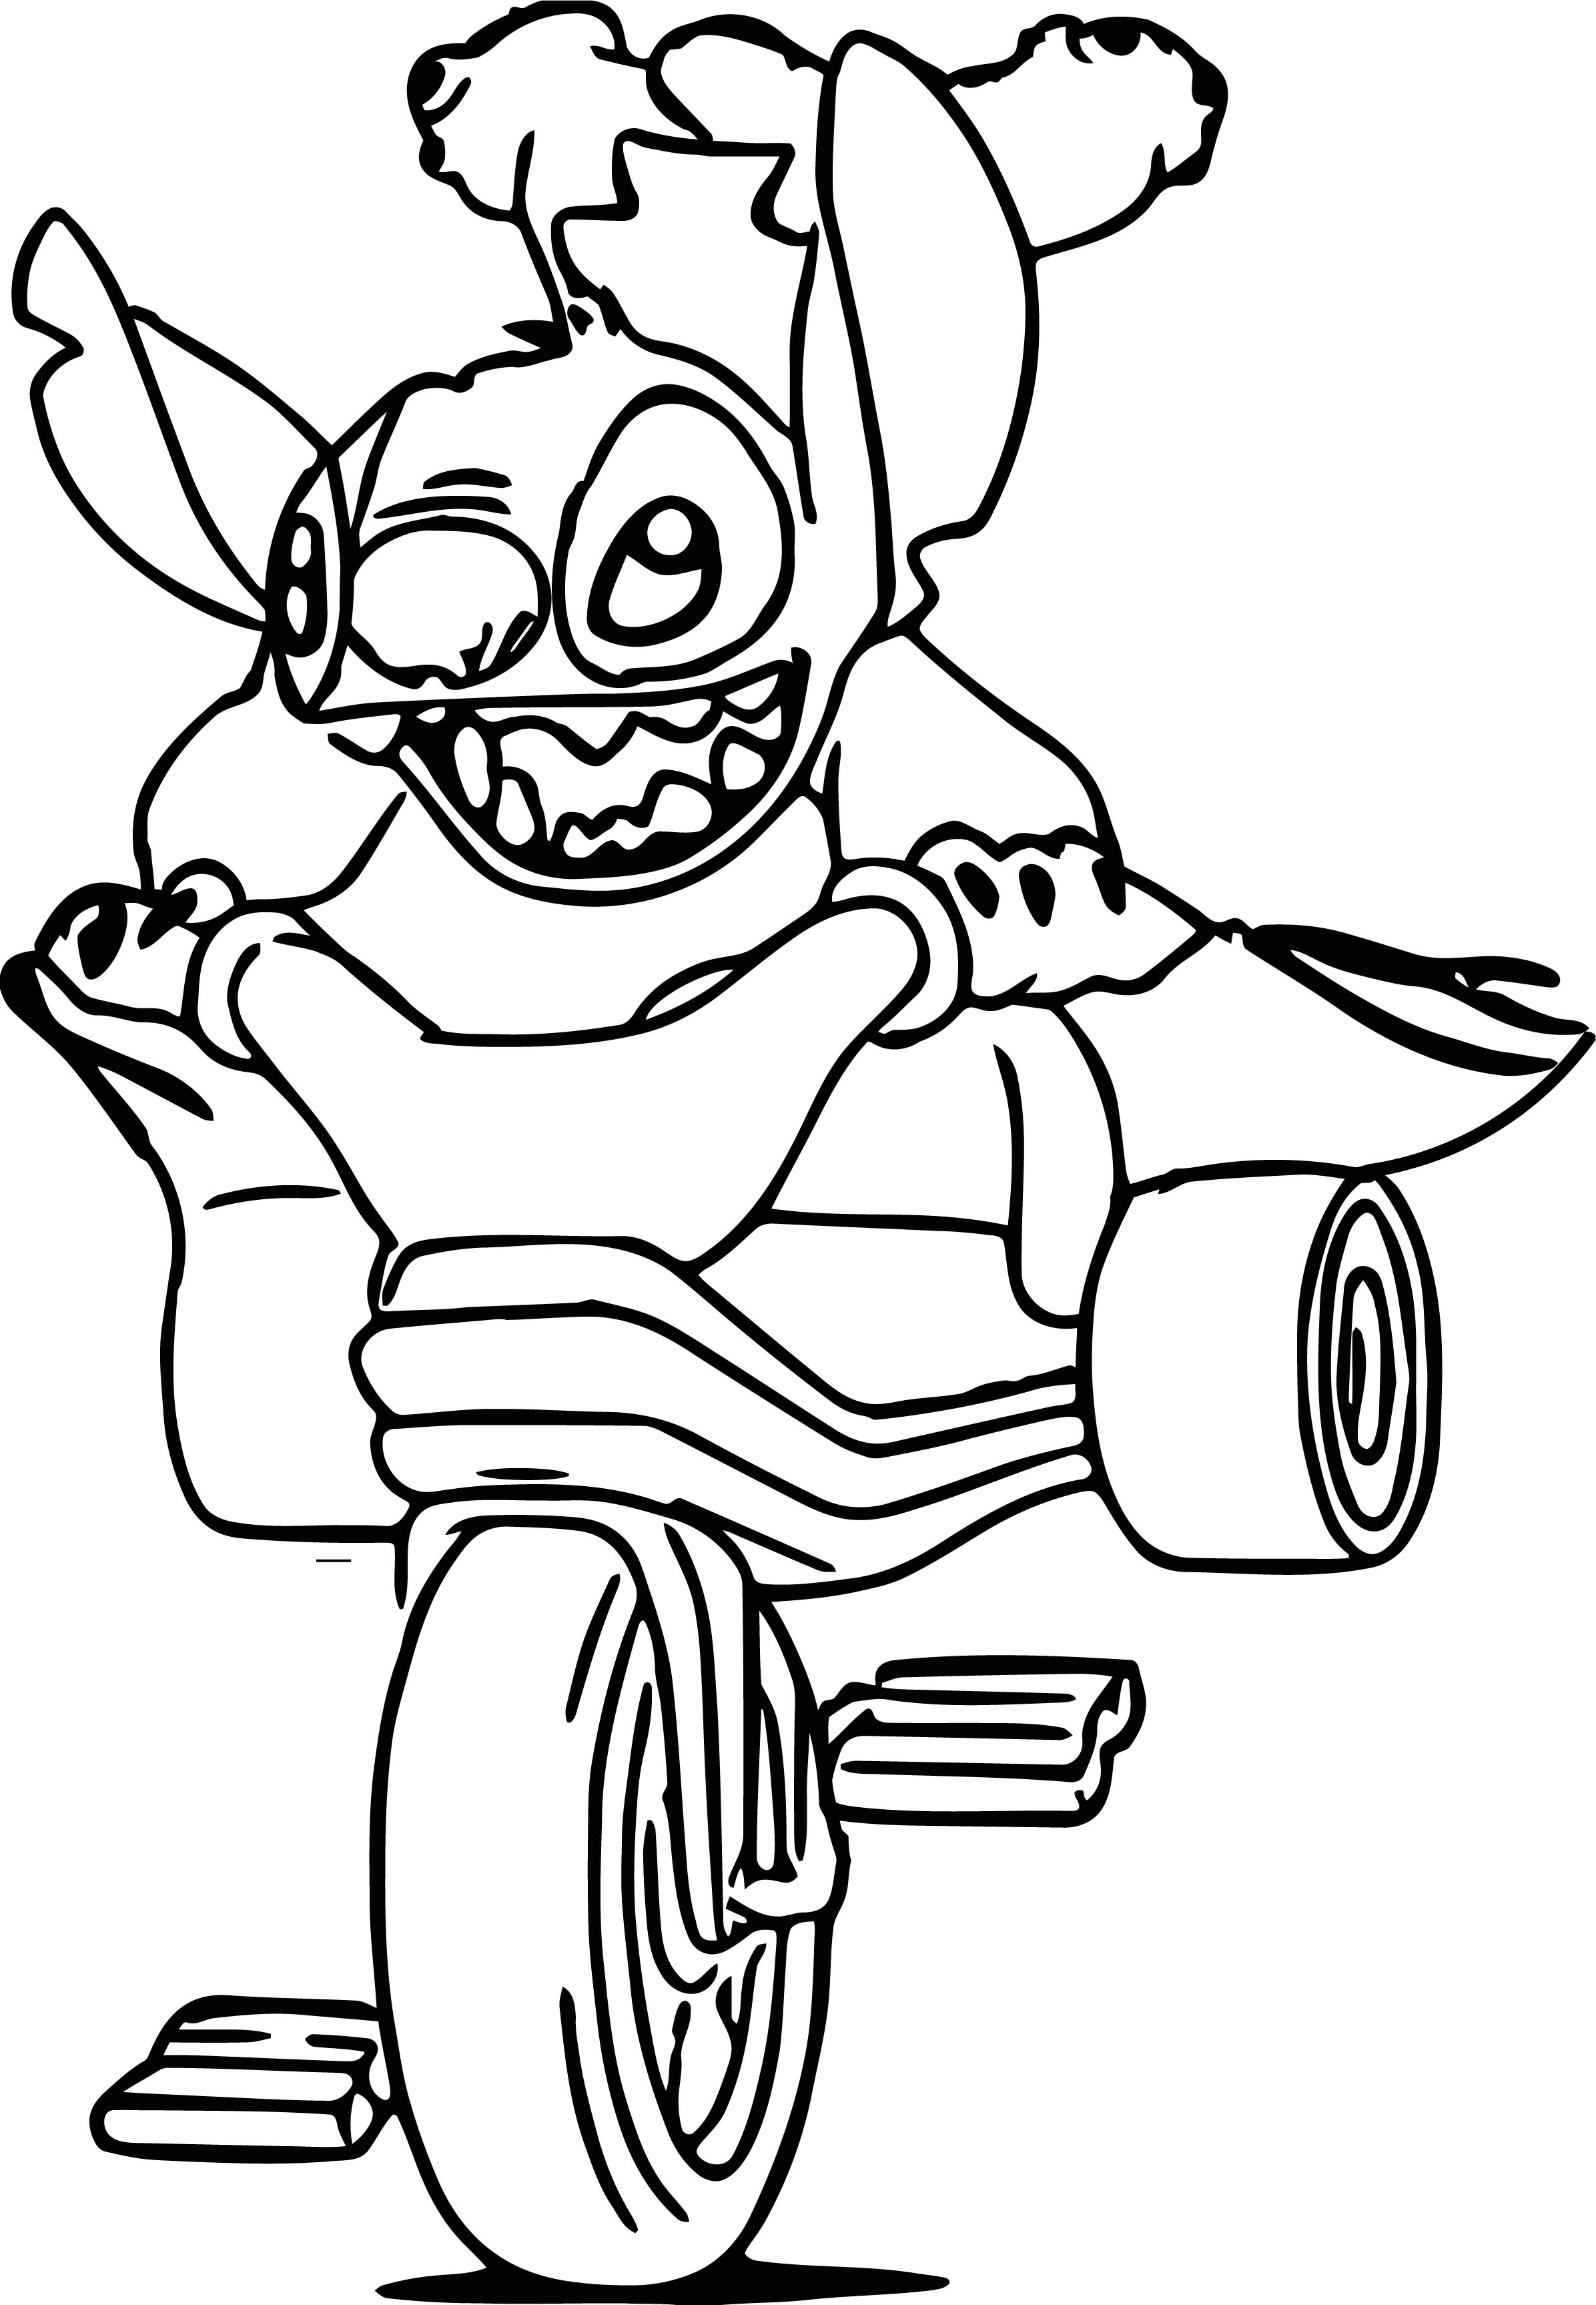 Stitch Biycle Dangerous Action Coloring Page